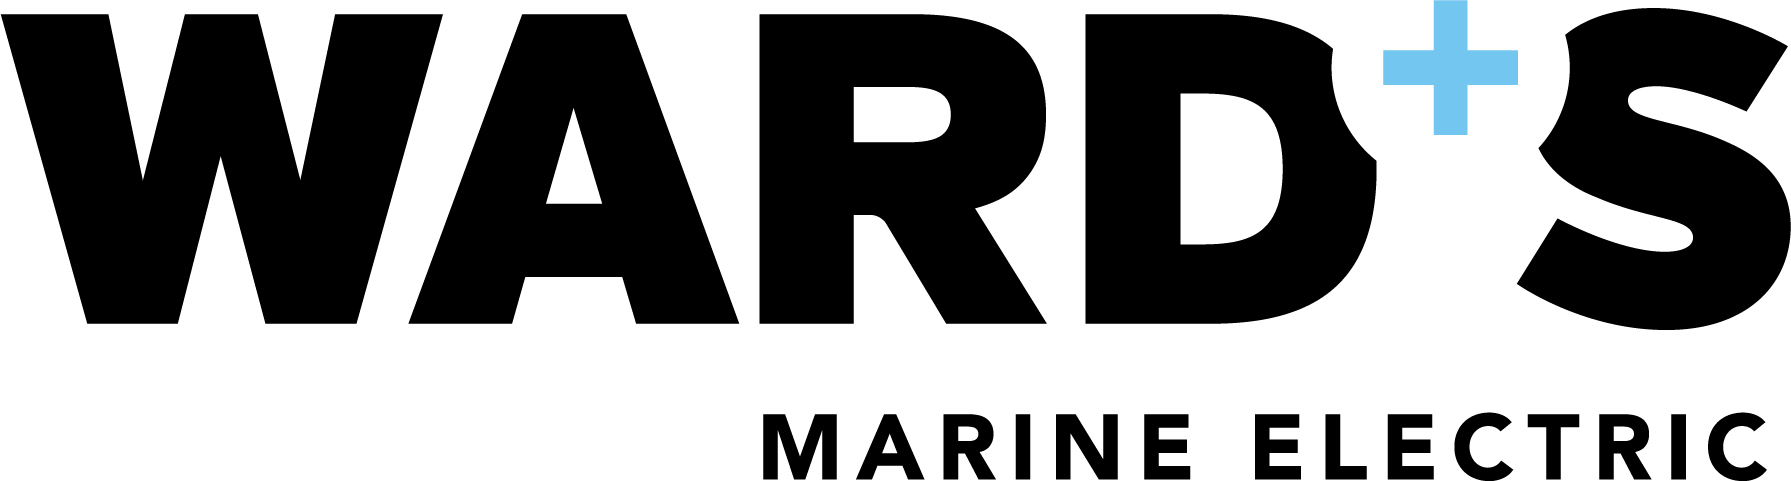 Wards Marine Electric